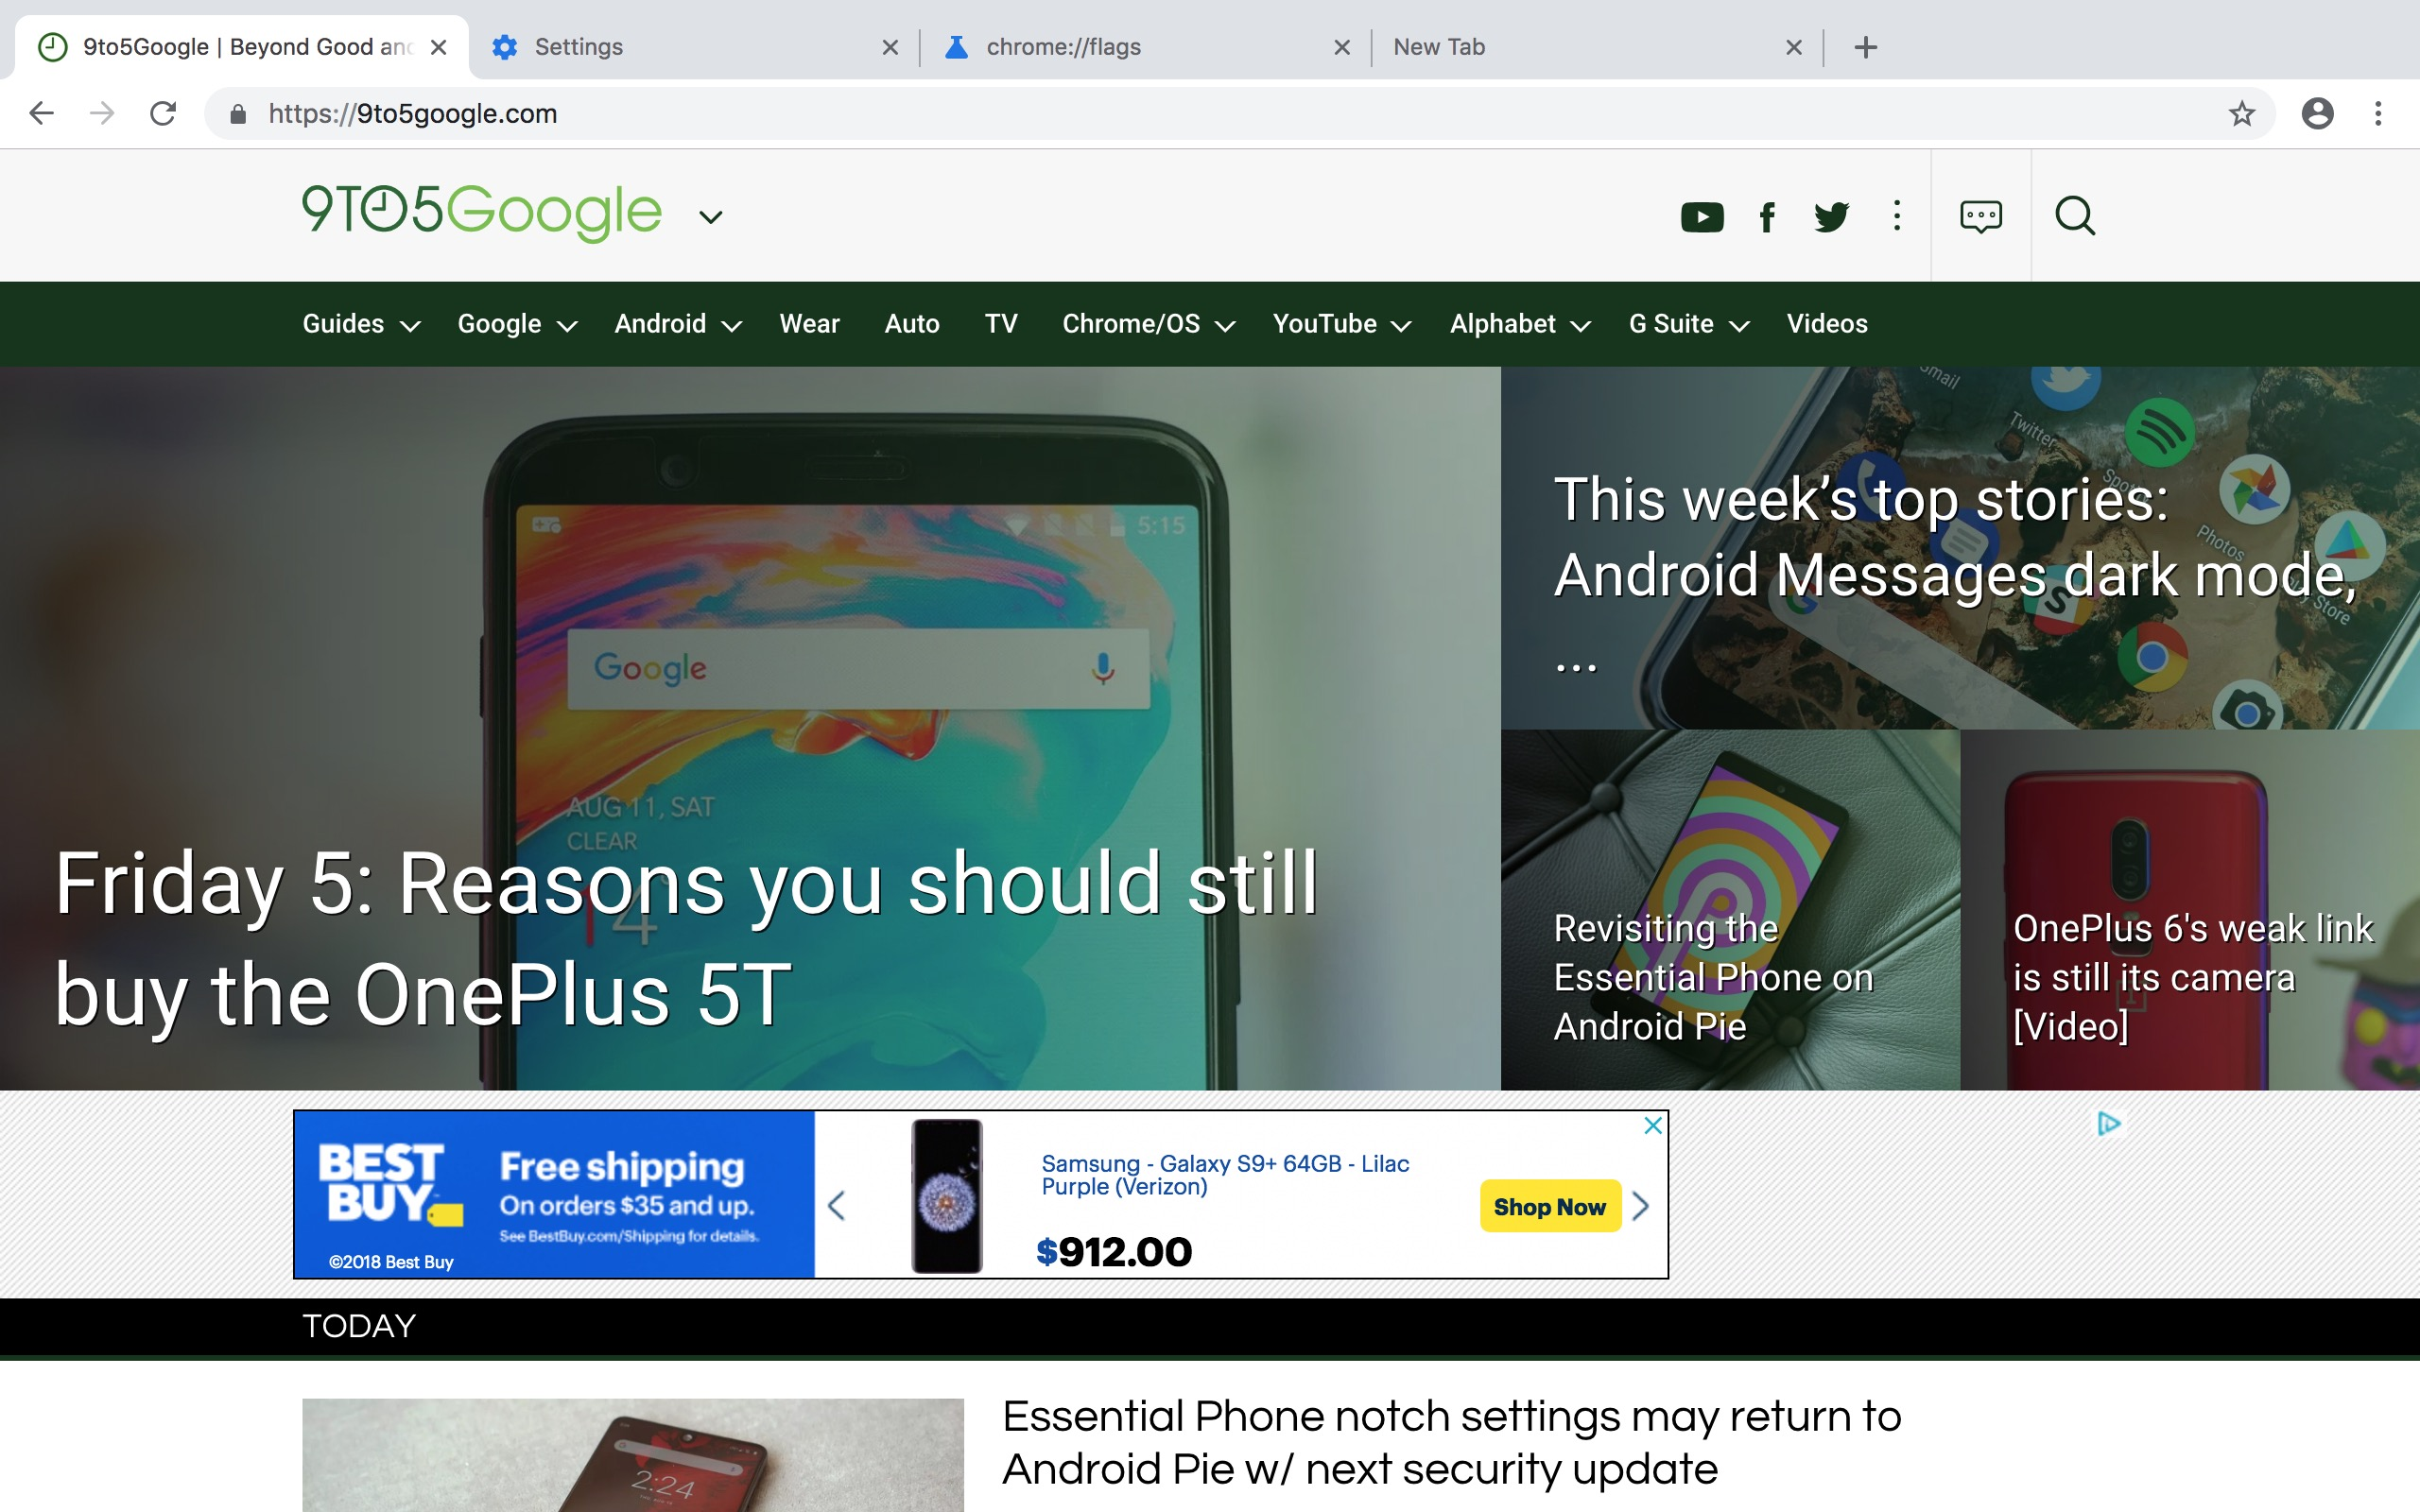 Chrome 69 rolling out 'Material Design refresh' next month